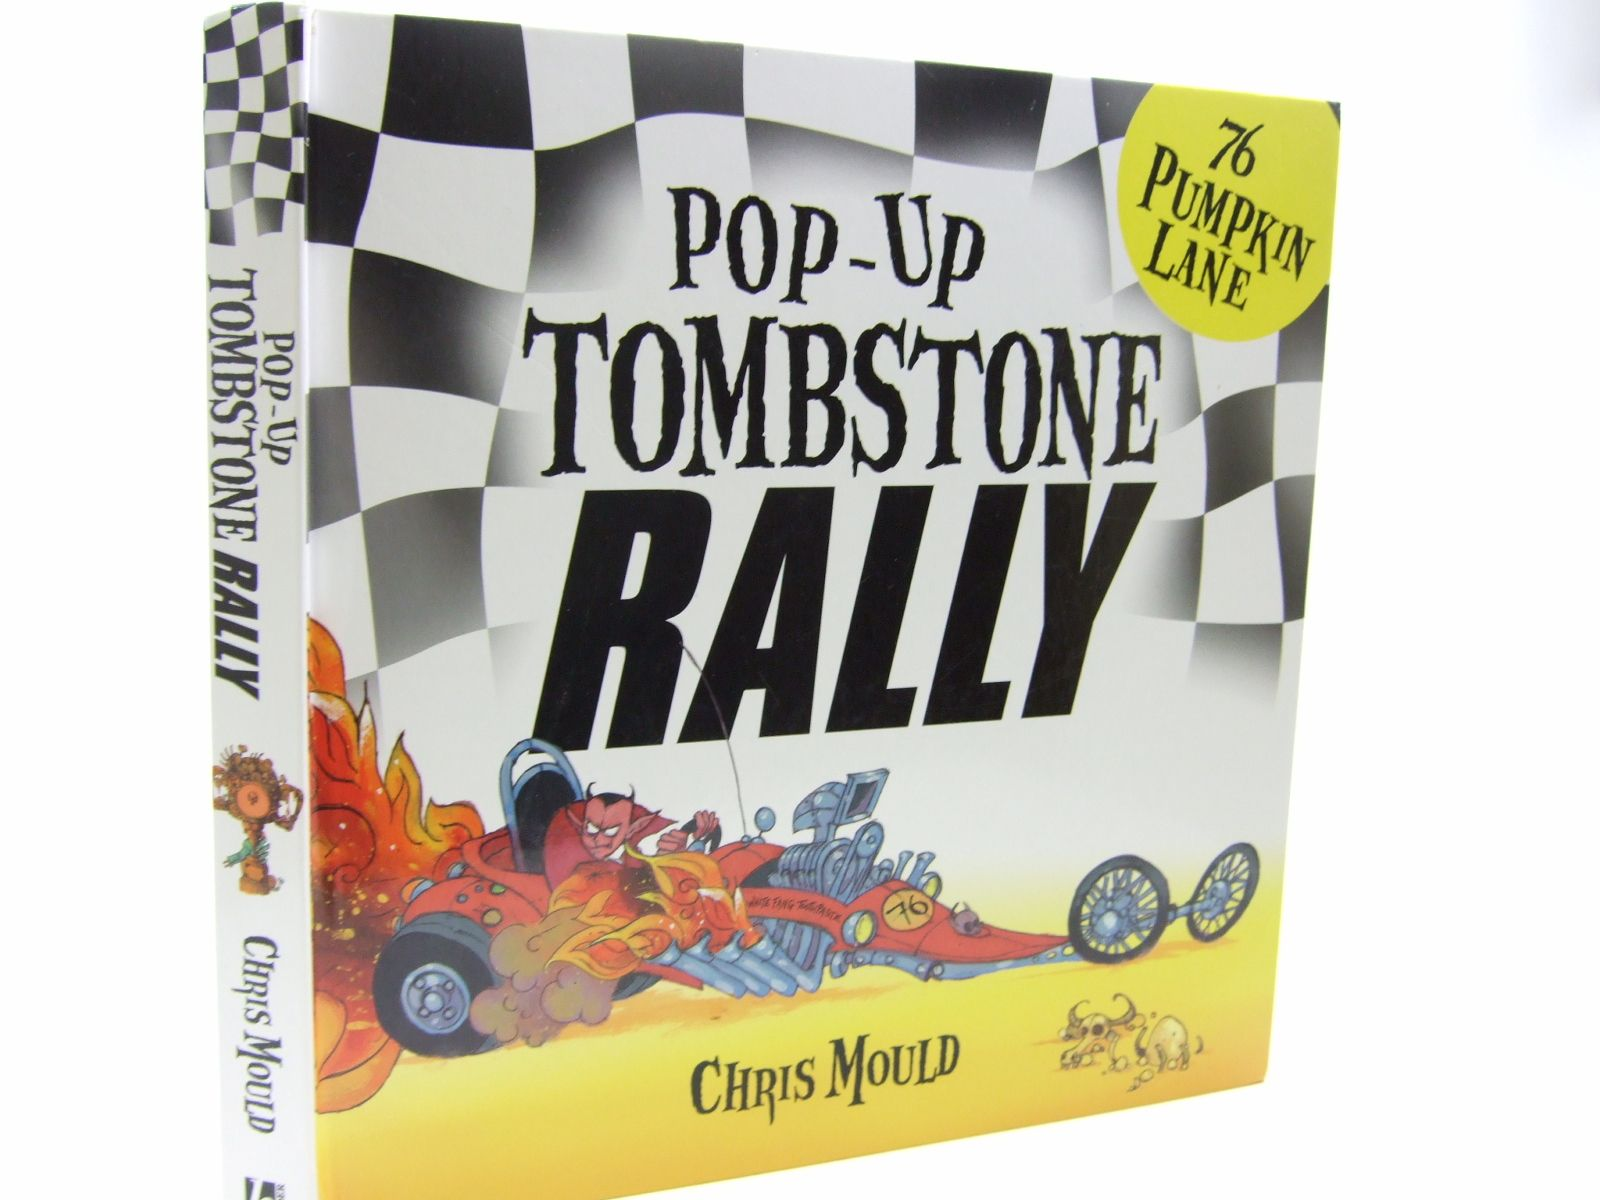 Photo of 76 PUMPKIN LANE POP-UP TOMBSTONE RALLY written by Mould, Chris published by Hodder Children's Books (STOCK CODE: 1707603)  for sale by Stella & Rose's Books